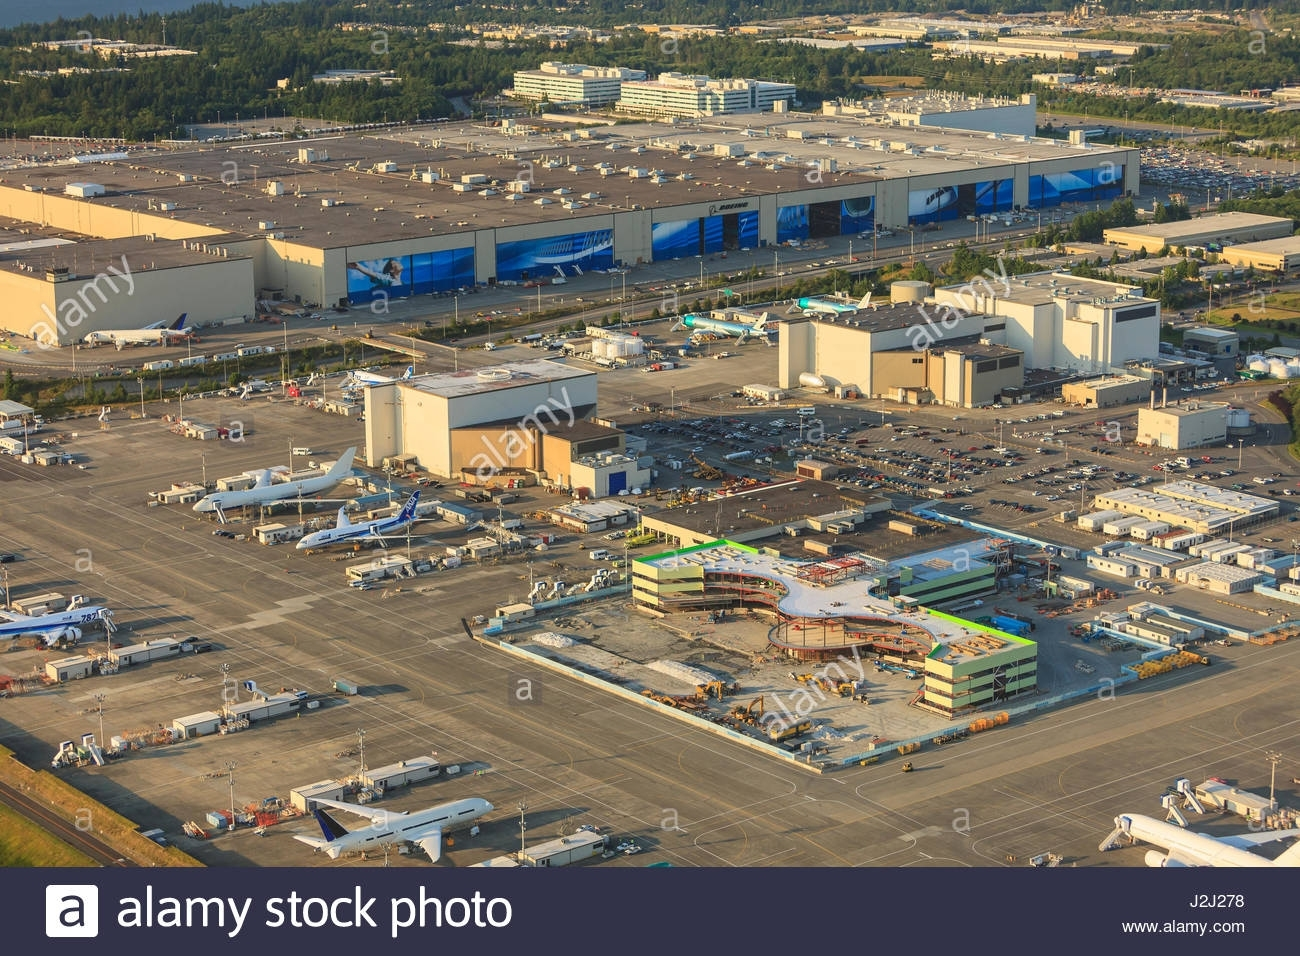 Aerial View Of Paine Field And Boeing Everett Plant, Largest within Boeing Factory Everett Map